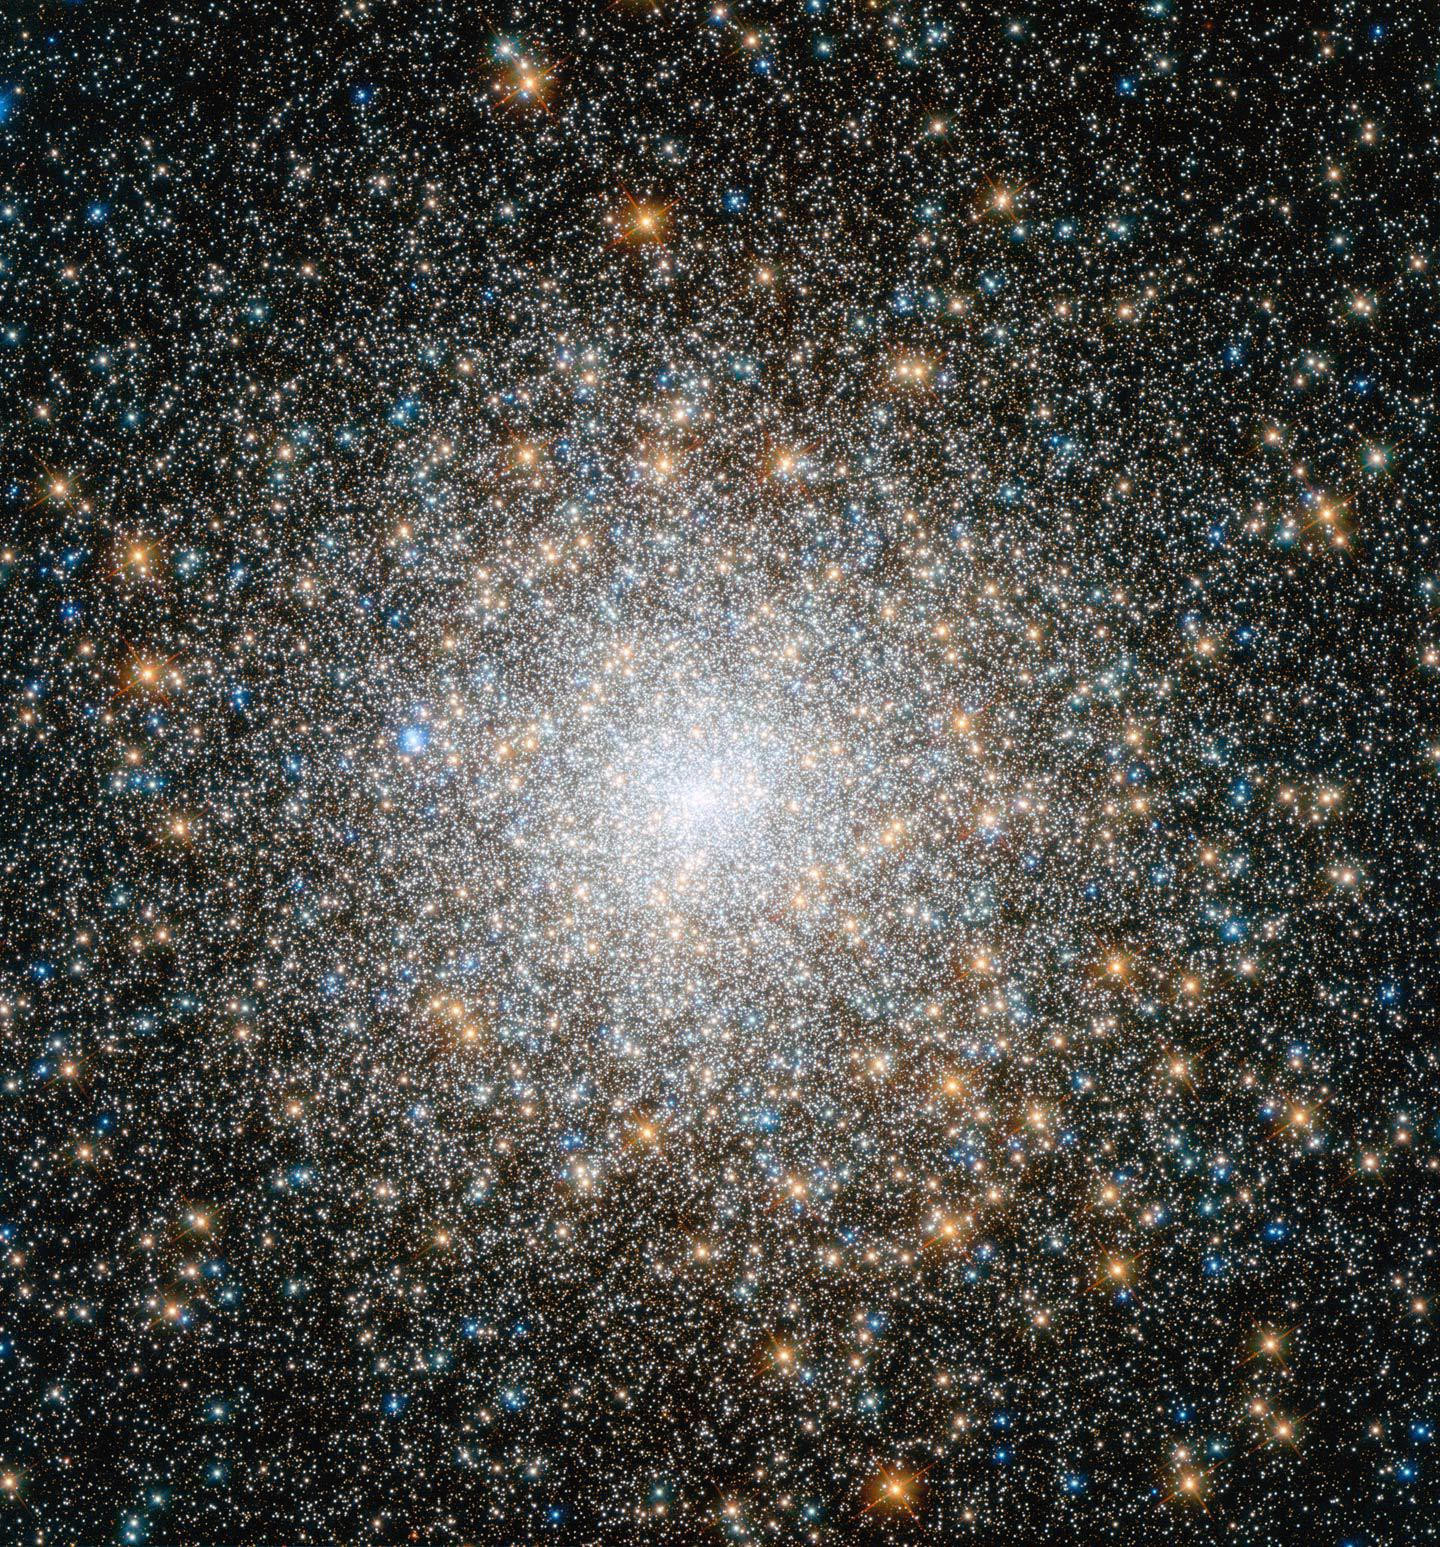 New Hubble image of star cluster Messier 15